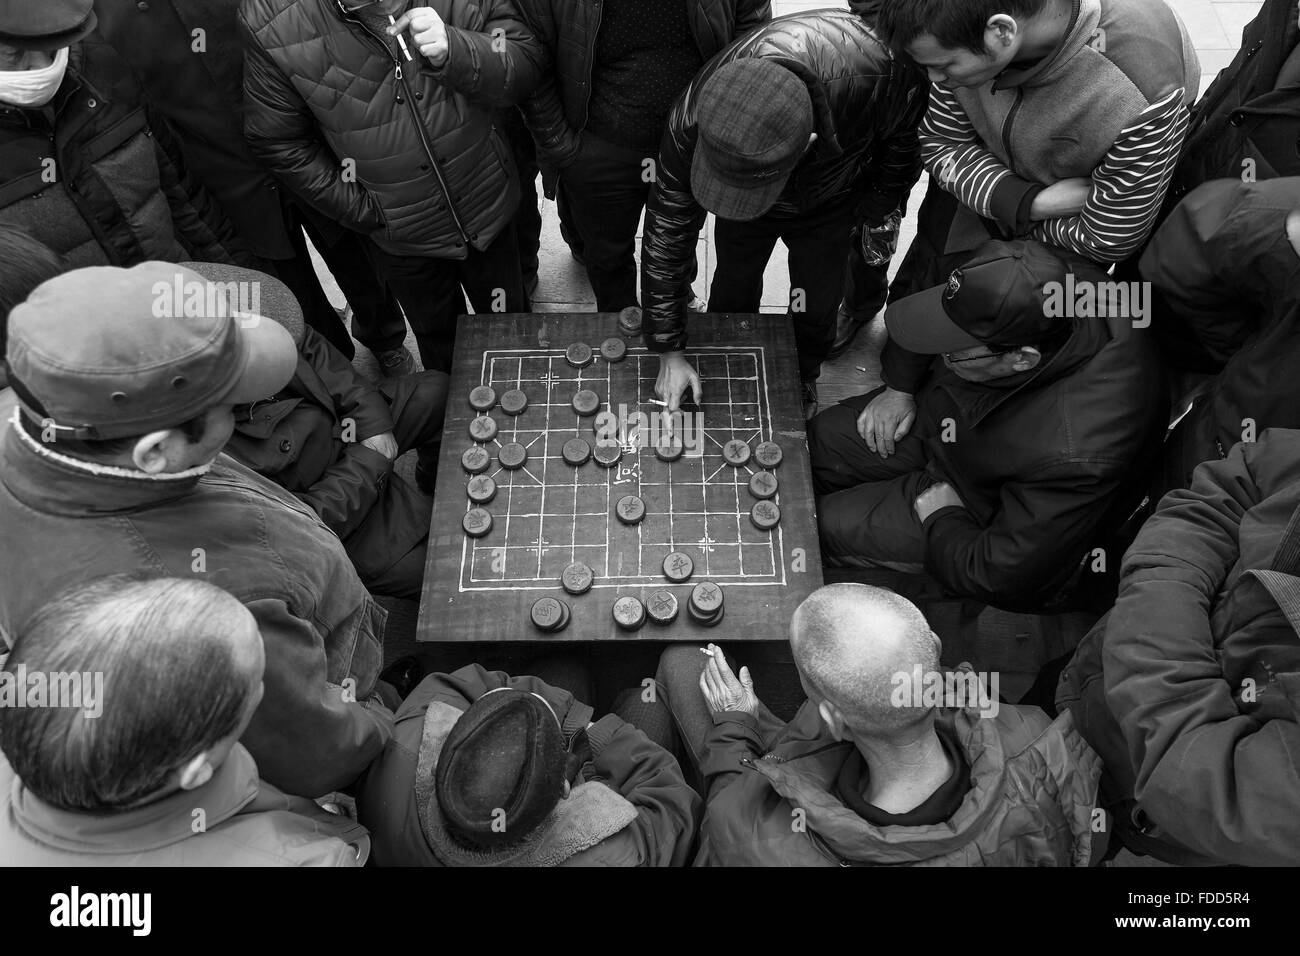 Chinese men playing Xiangqi at a park in a cold winter afternoon in Xi'an. - Stock Image